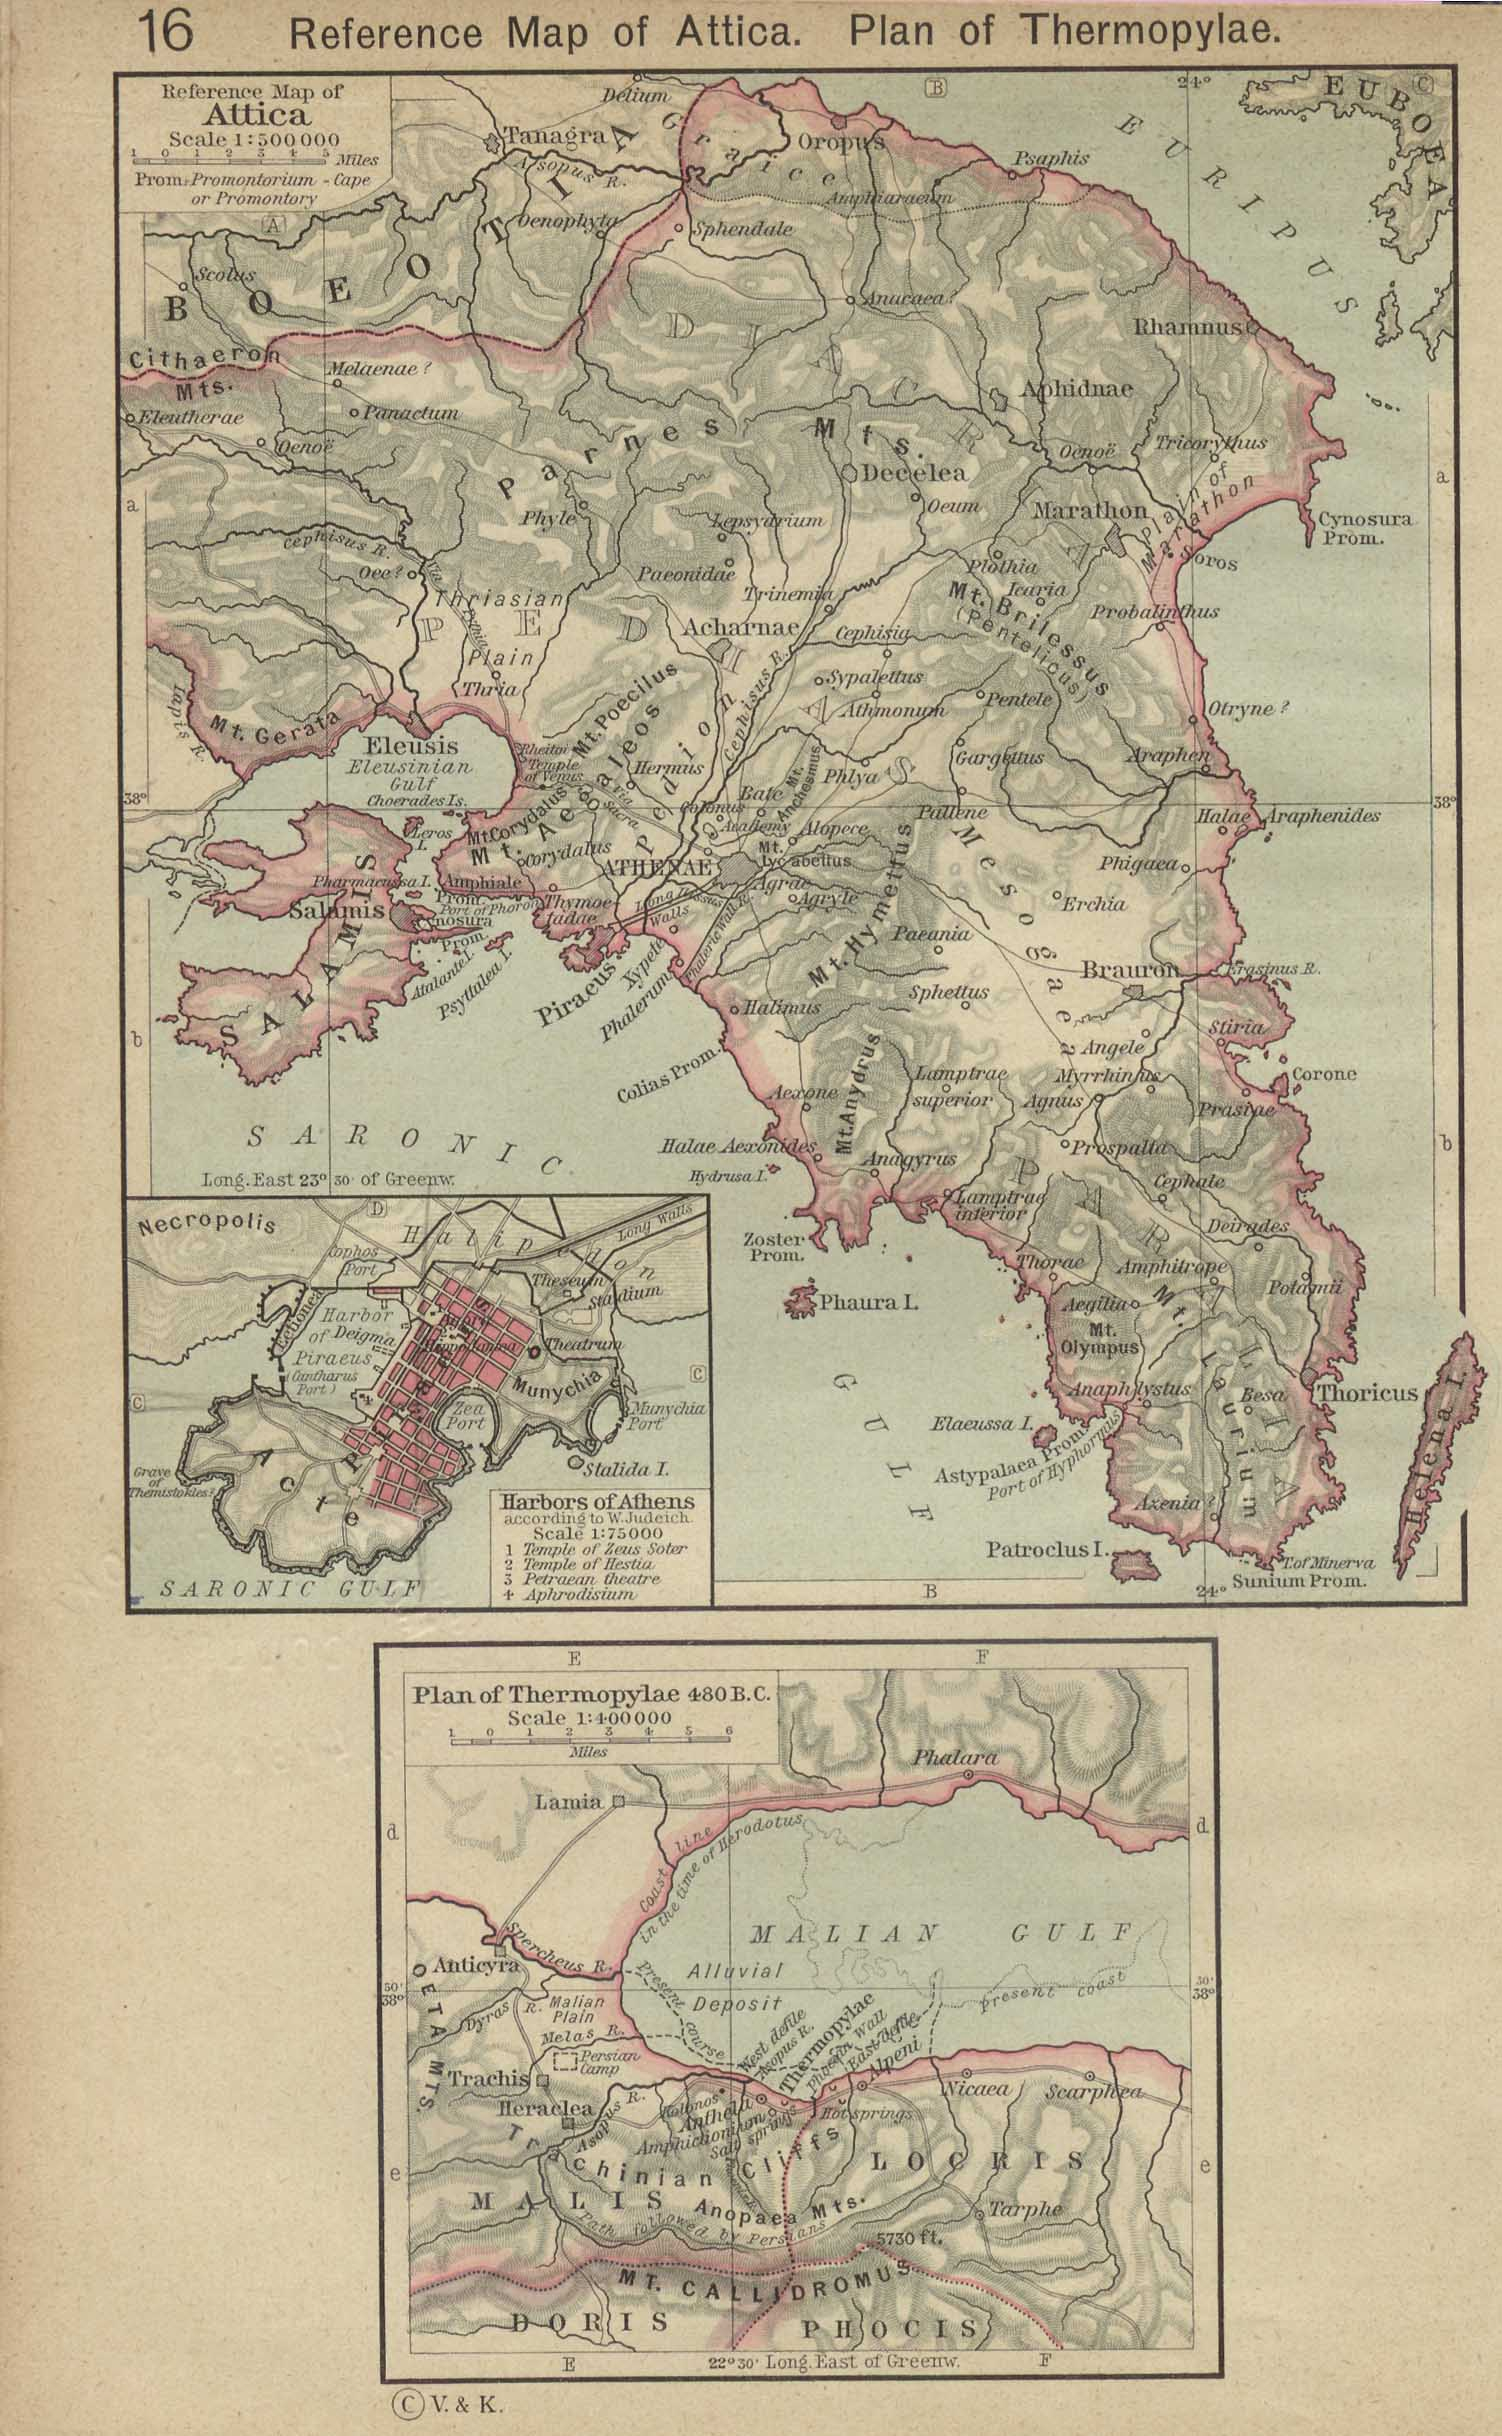 Map Of Greece , Reference Map of Attica. Plan of Thermopylae, 480 B.C. Inset: Harbors of Athens. From The Historical Atlas by William R. Shepherd, 1923.(500K)